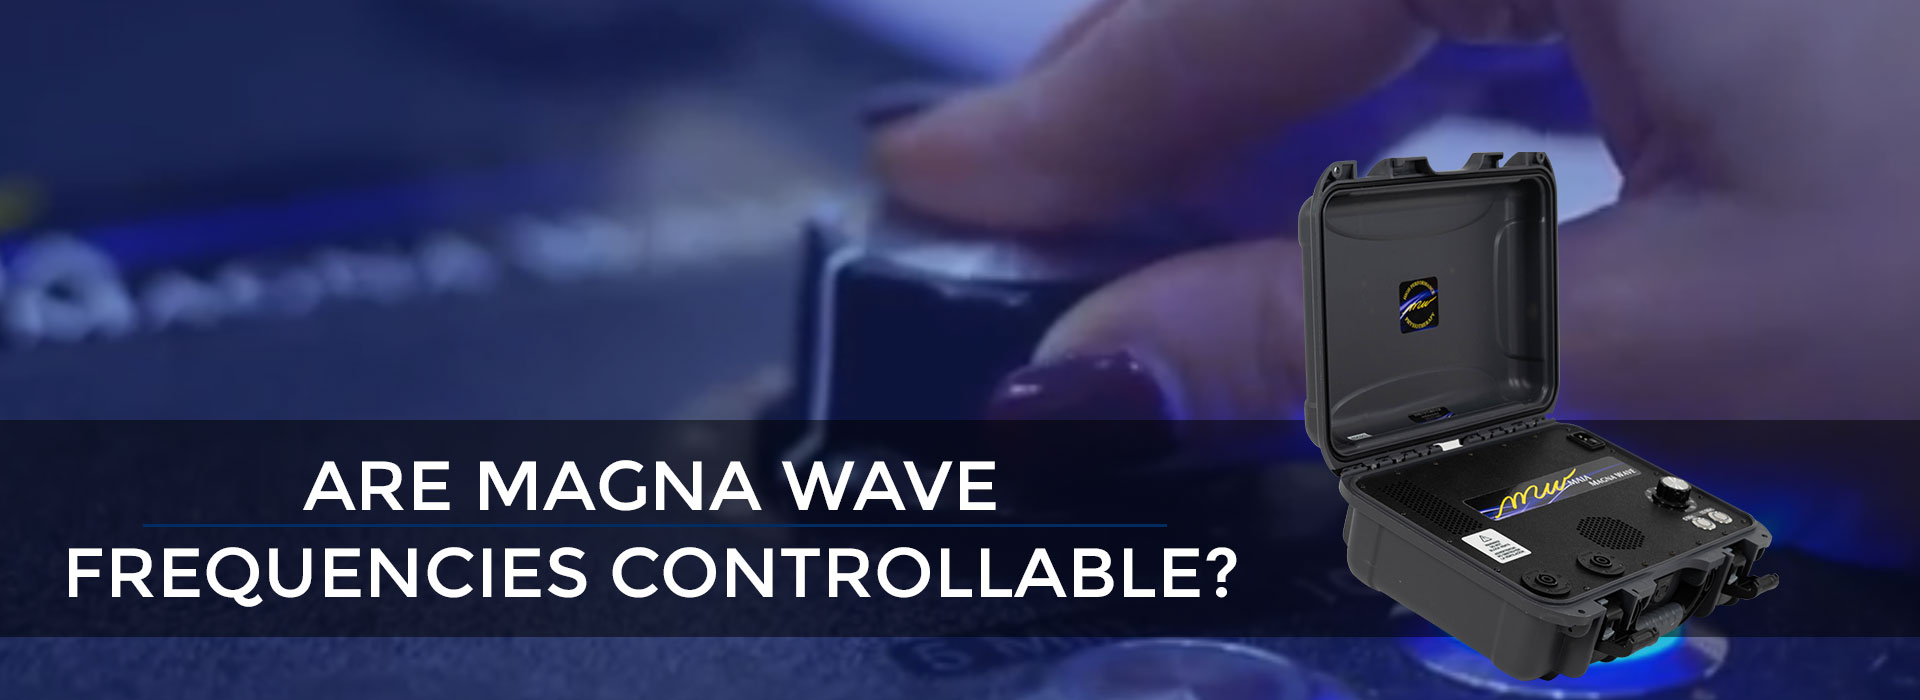 Are Magna Wave Frequencies Controllable?